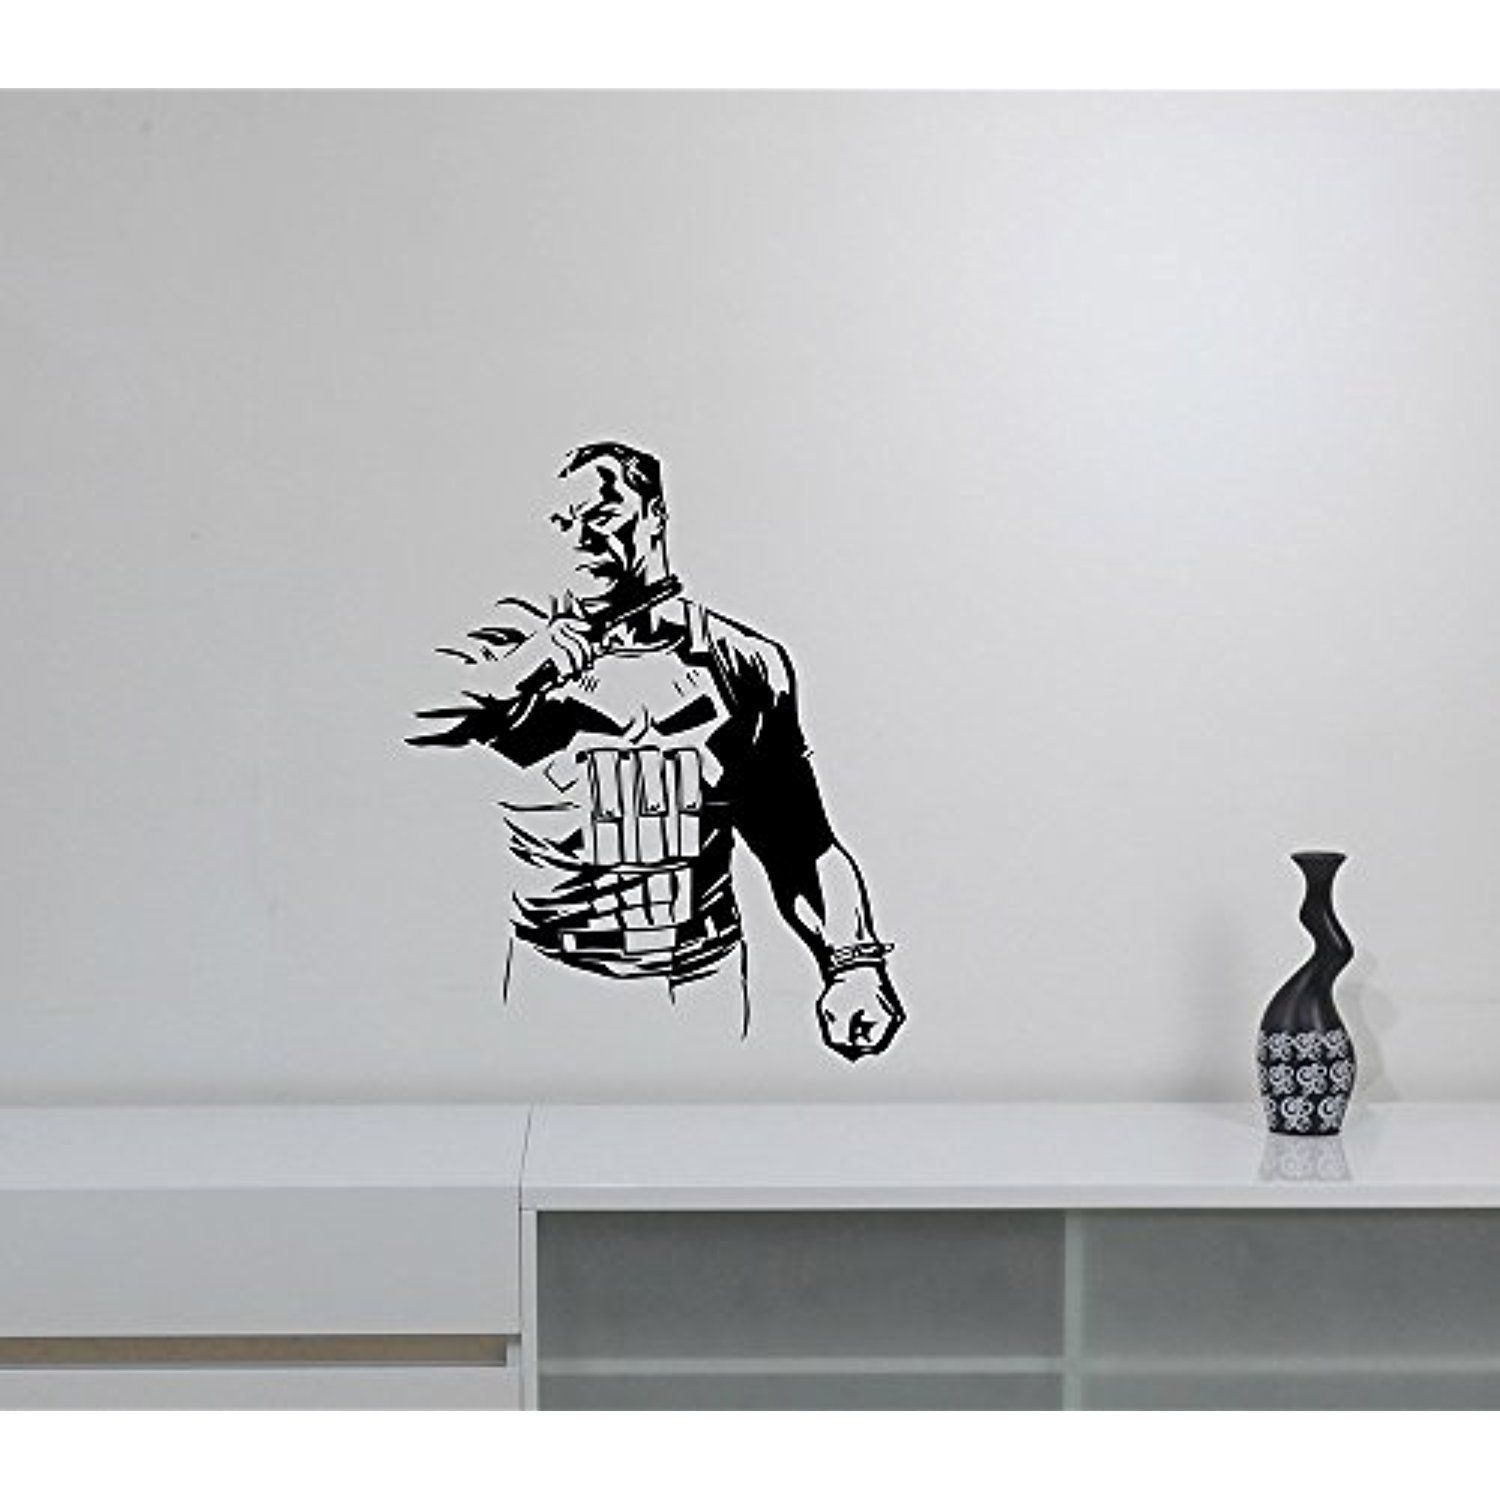 The Punisher Wall Sticker Vinyl Decal Marvel